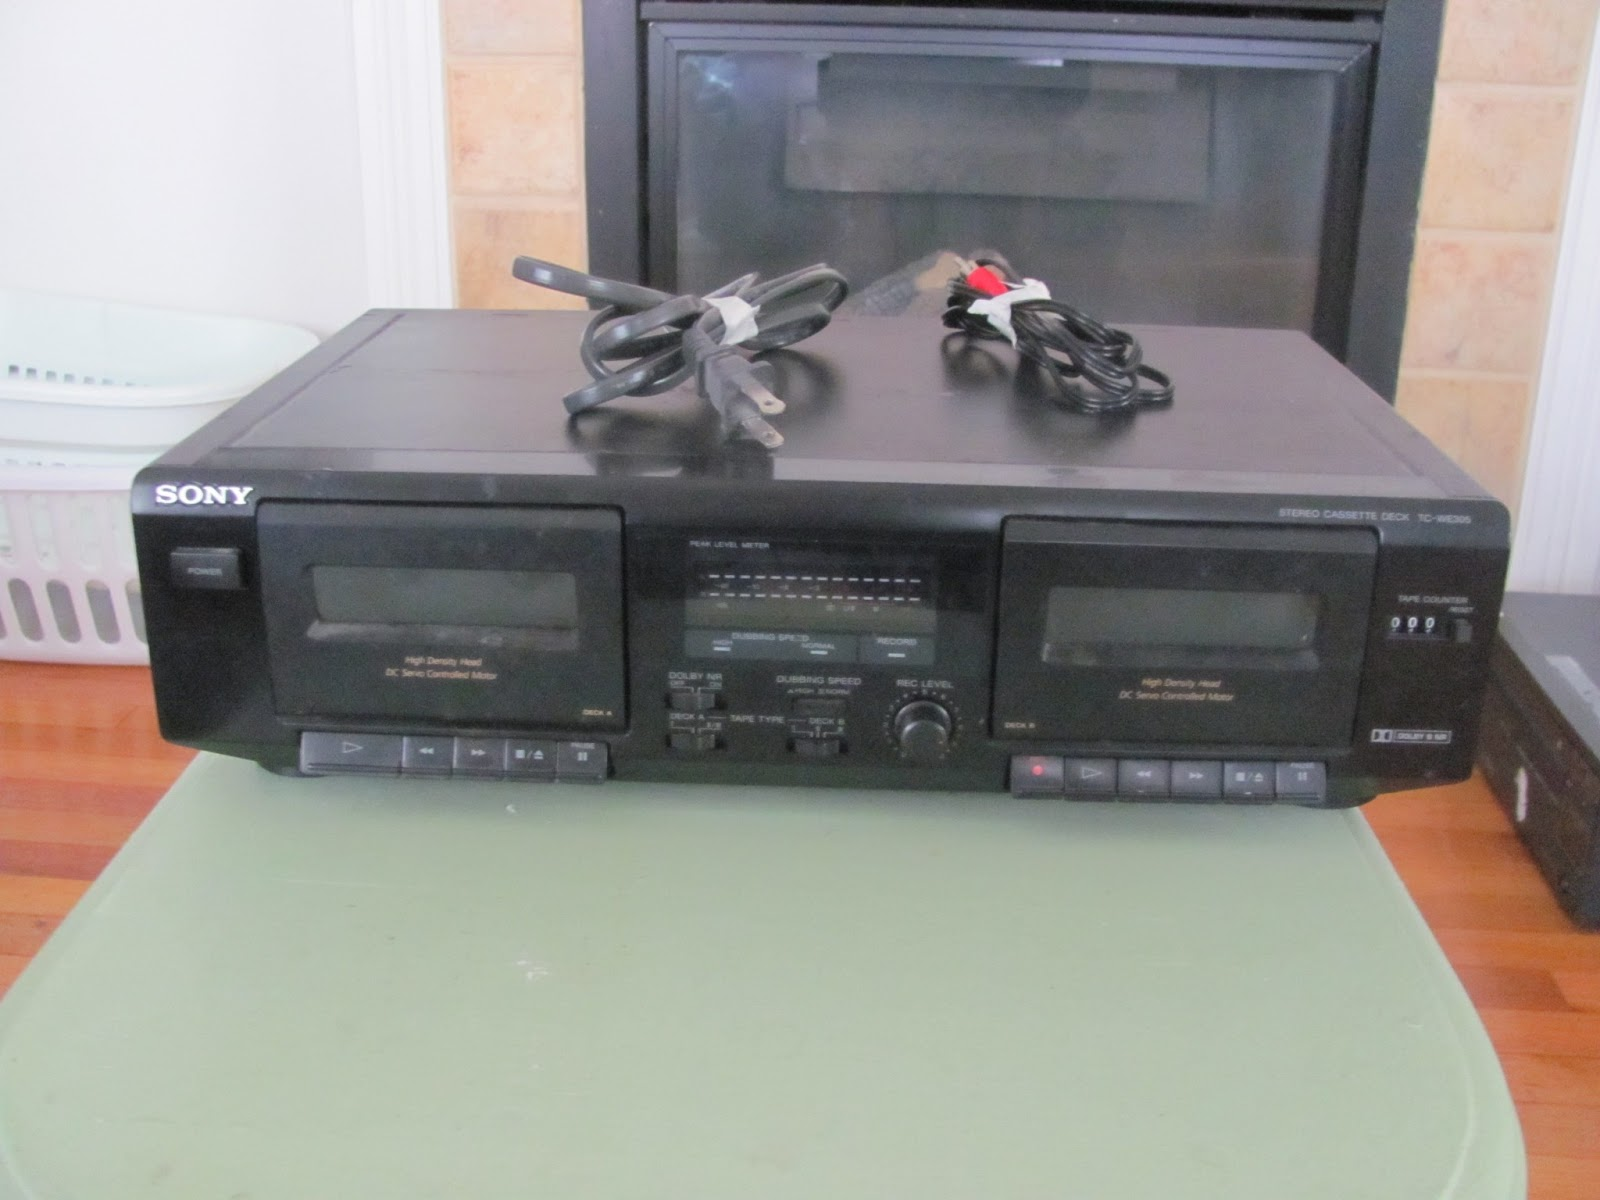 Sony two-deck cassette player on display before being sold on Craigslist